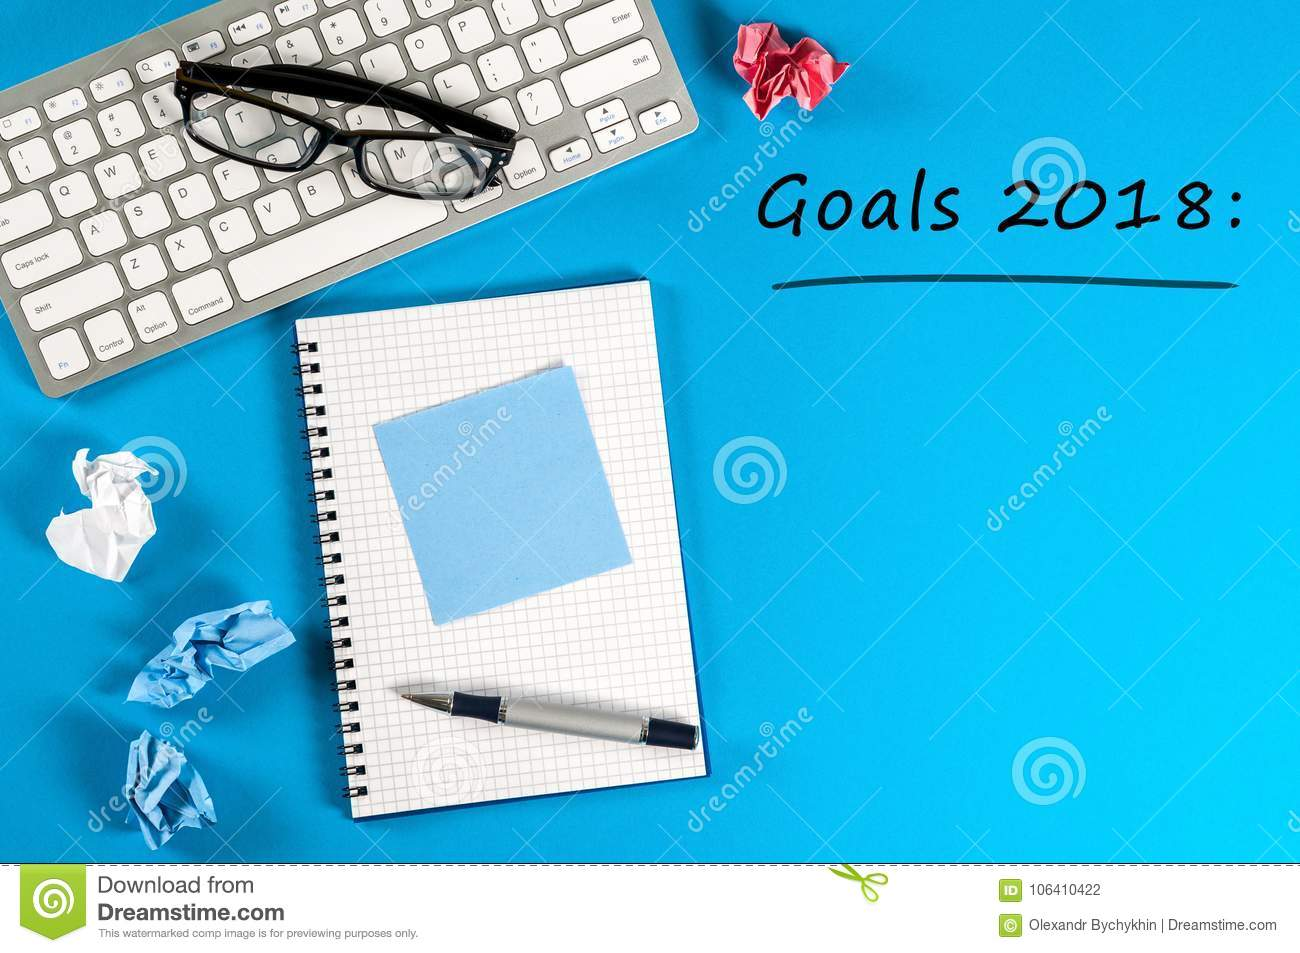 Top View 2018 Goals List With Keyboard, Office Supplies On